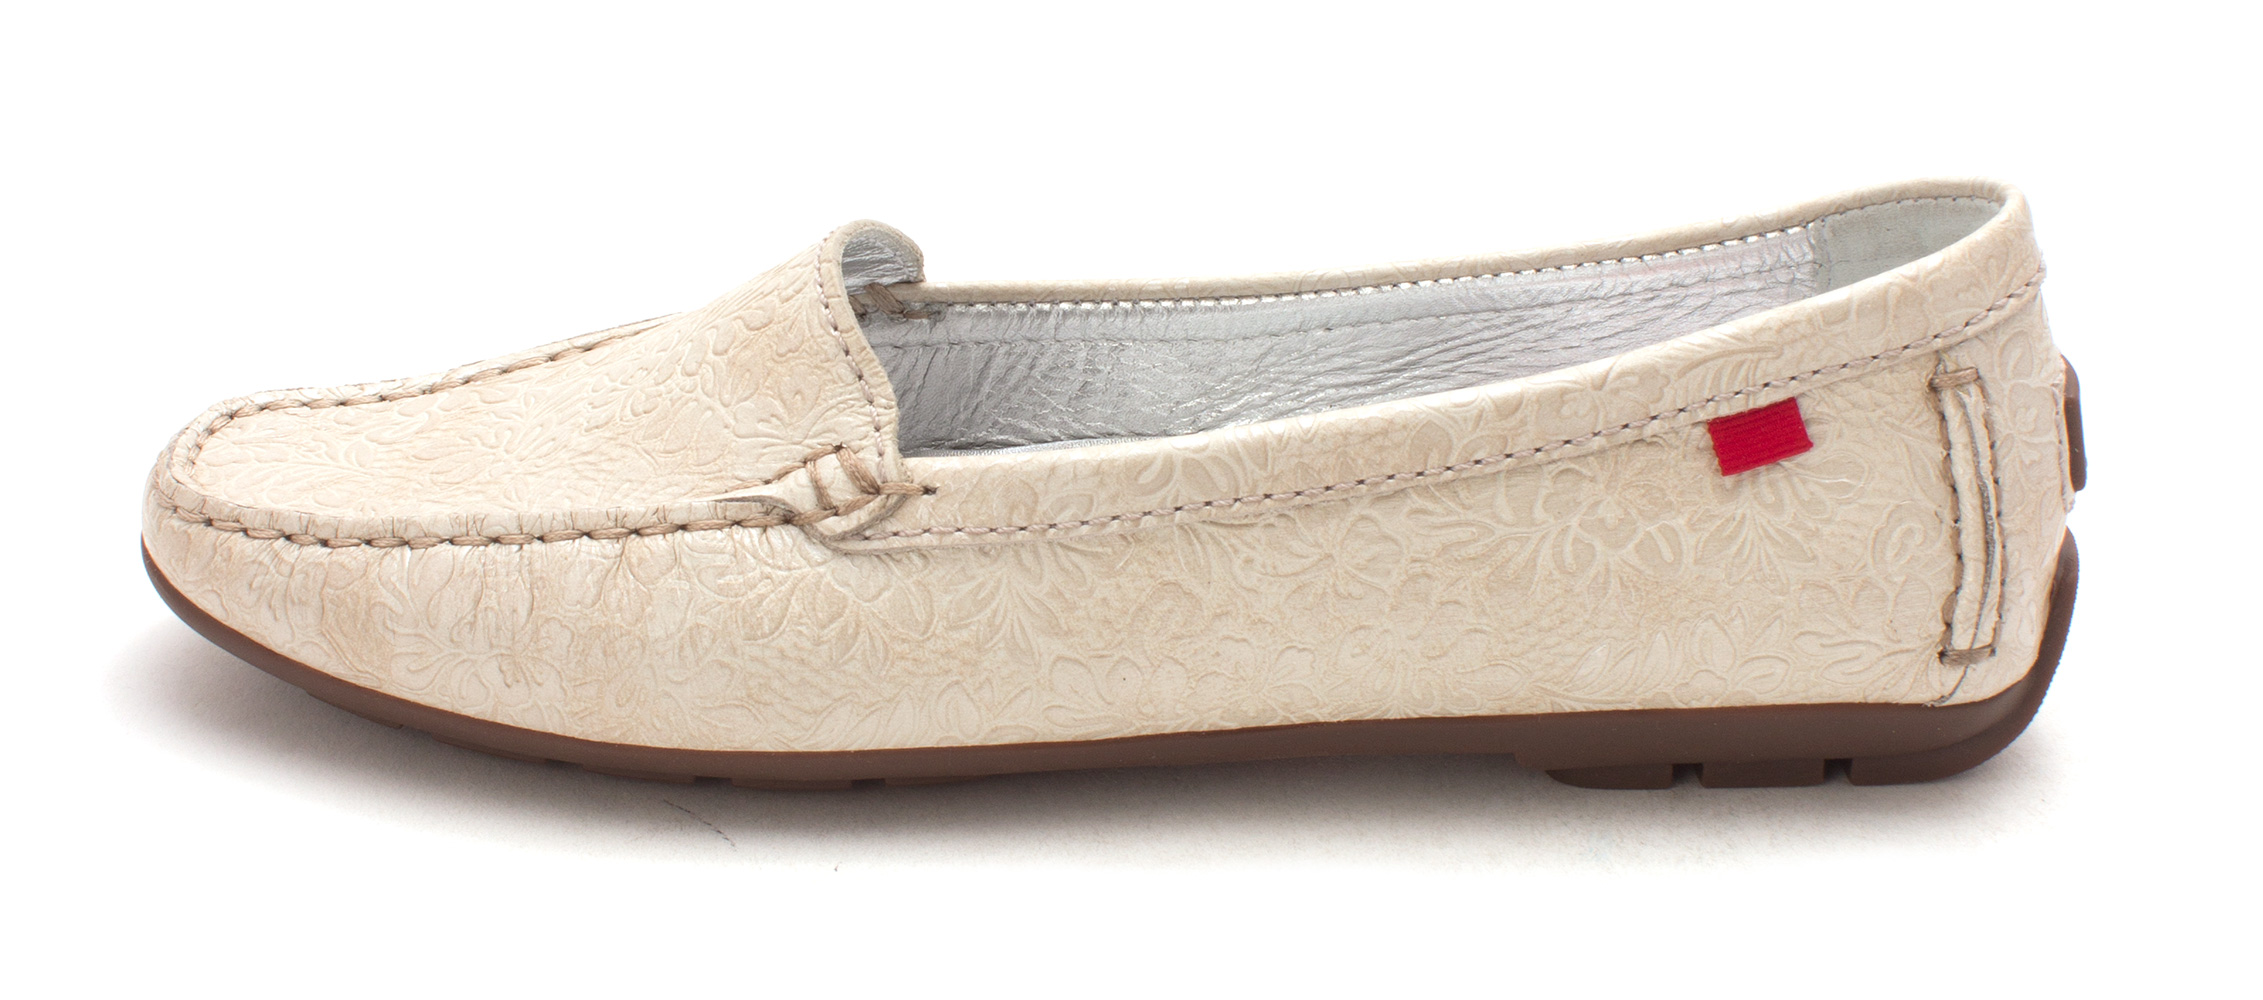 1334dedcf91 Details about Marc Joseph New York Womens Manhasset Closed Toe Loafers